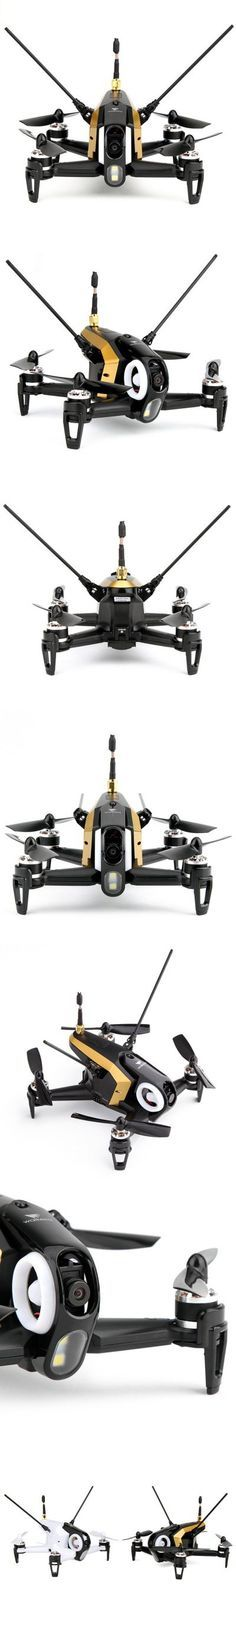 RC Quadcopters   Walkera Rodeo 150 Racing Drone BNF $196.00 - Looking for a 'Qua...